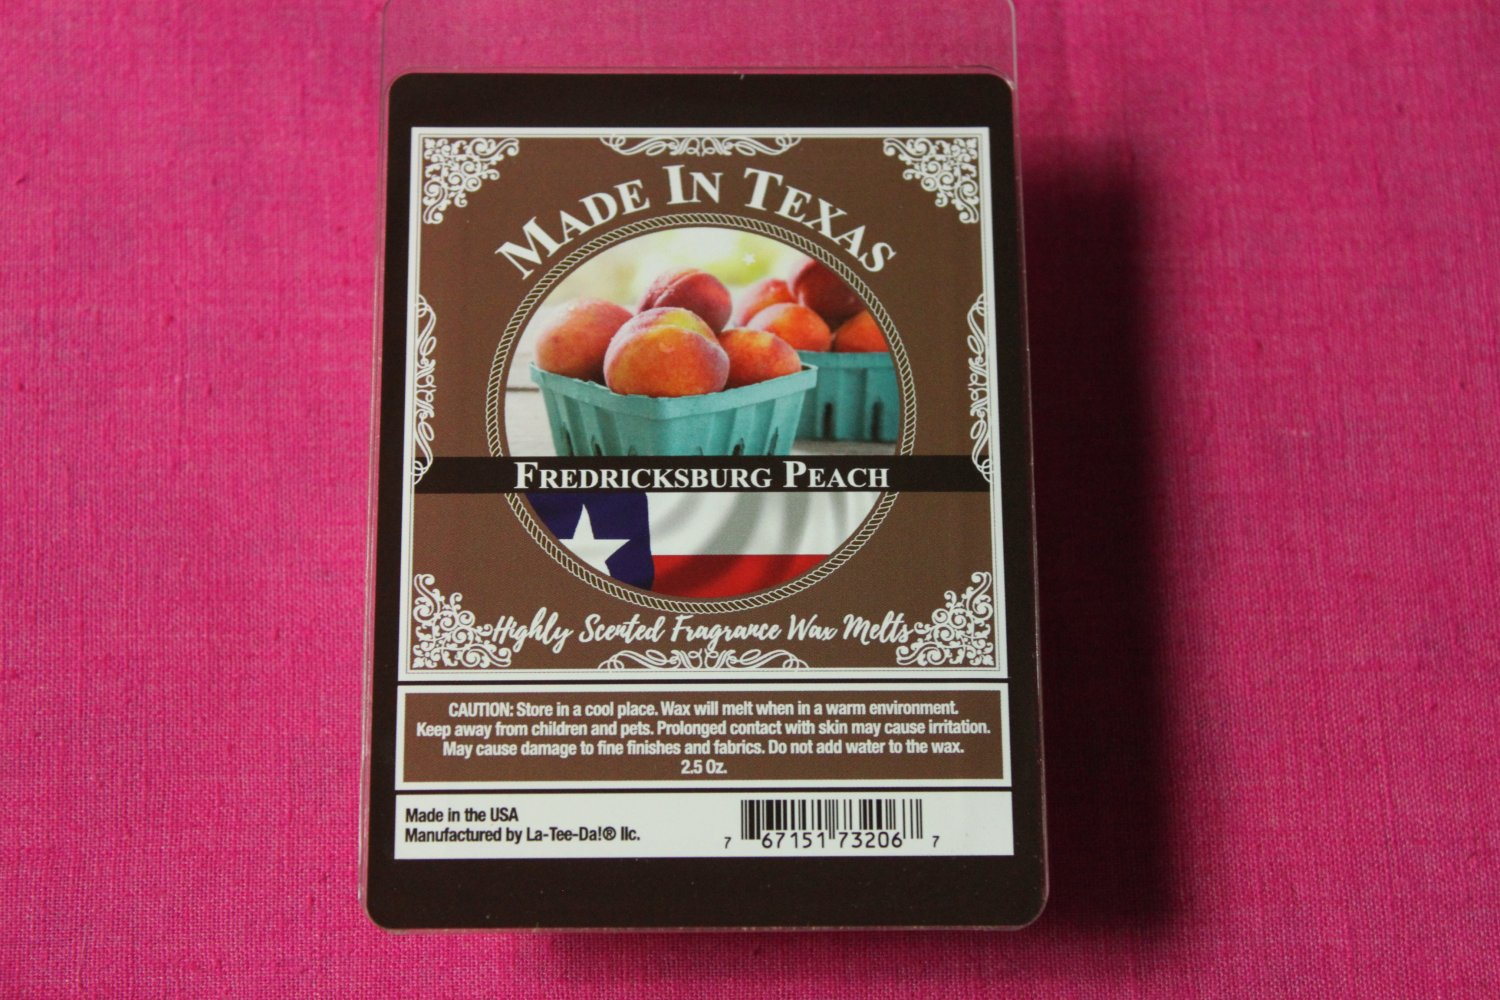 Made In Texas Fredericksburg Peach Wax Melt Cubes